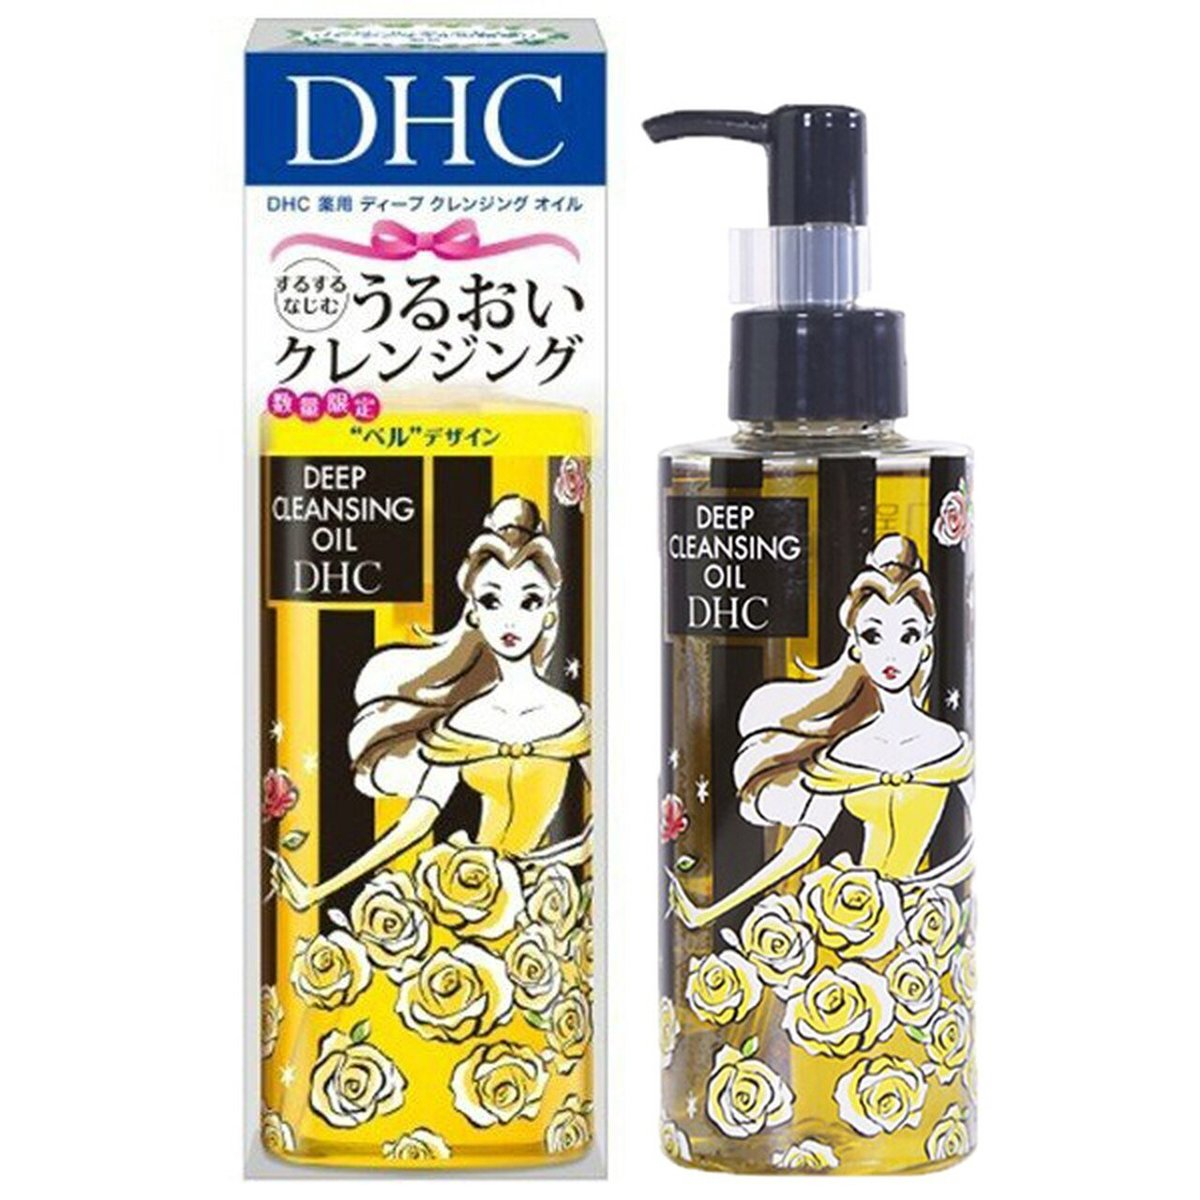 Deep Cleansing Oil 150ml (Disneyland Limited Edition Black)[Parallel Import]